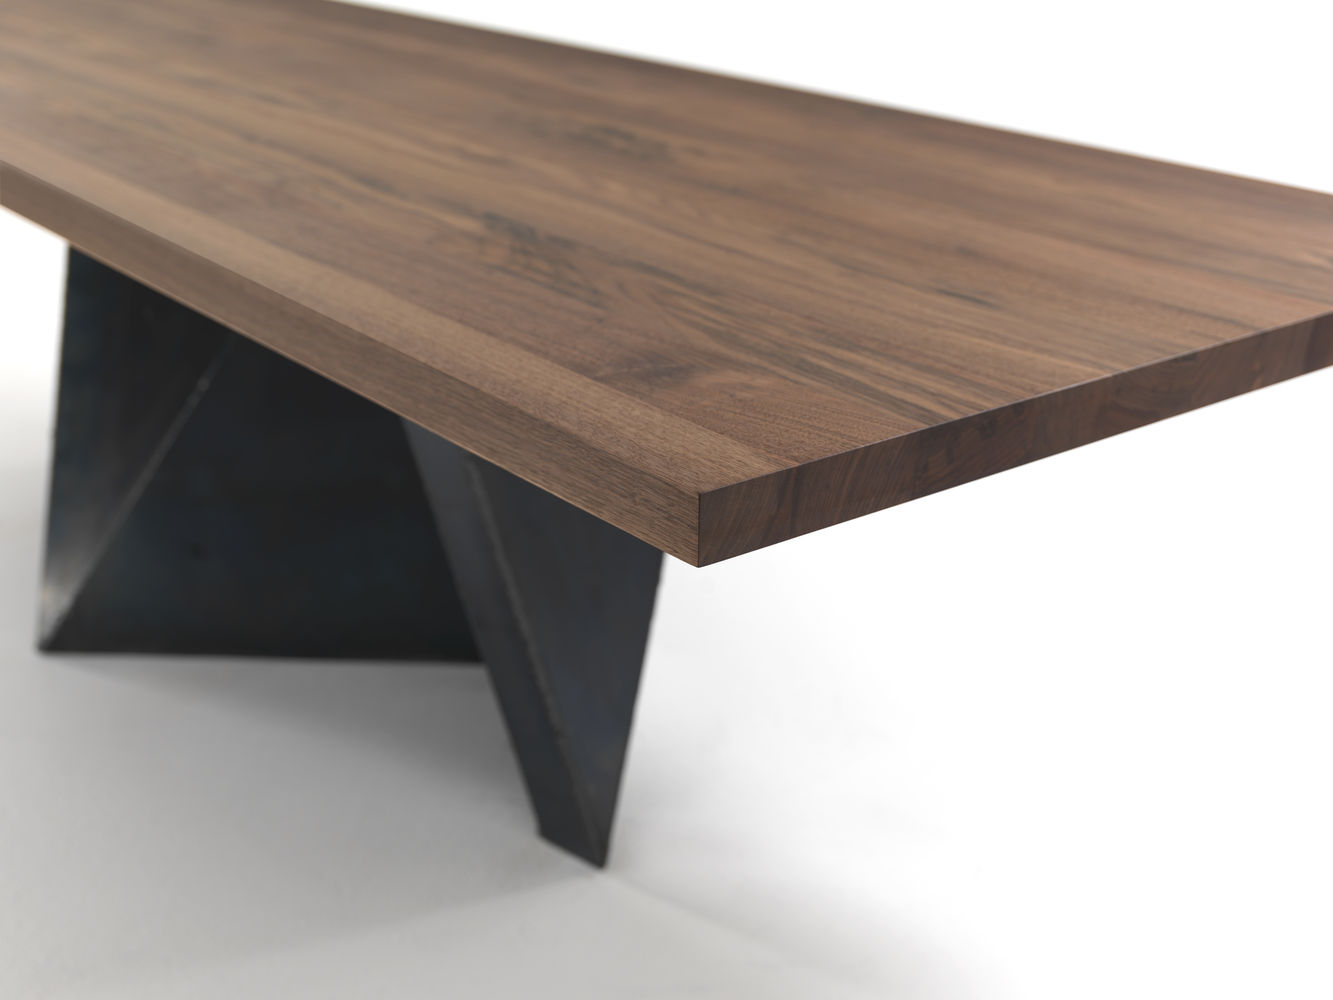 Ooki dining table by riva 1920 sohomod blog for Table riva but